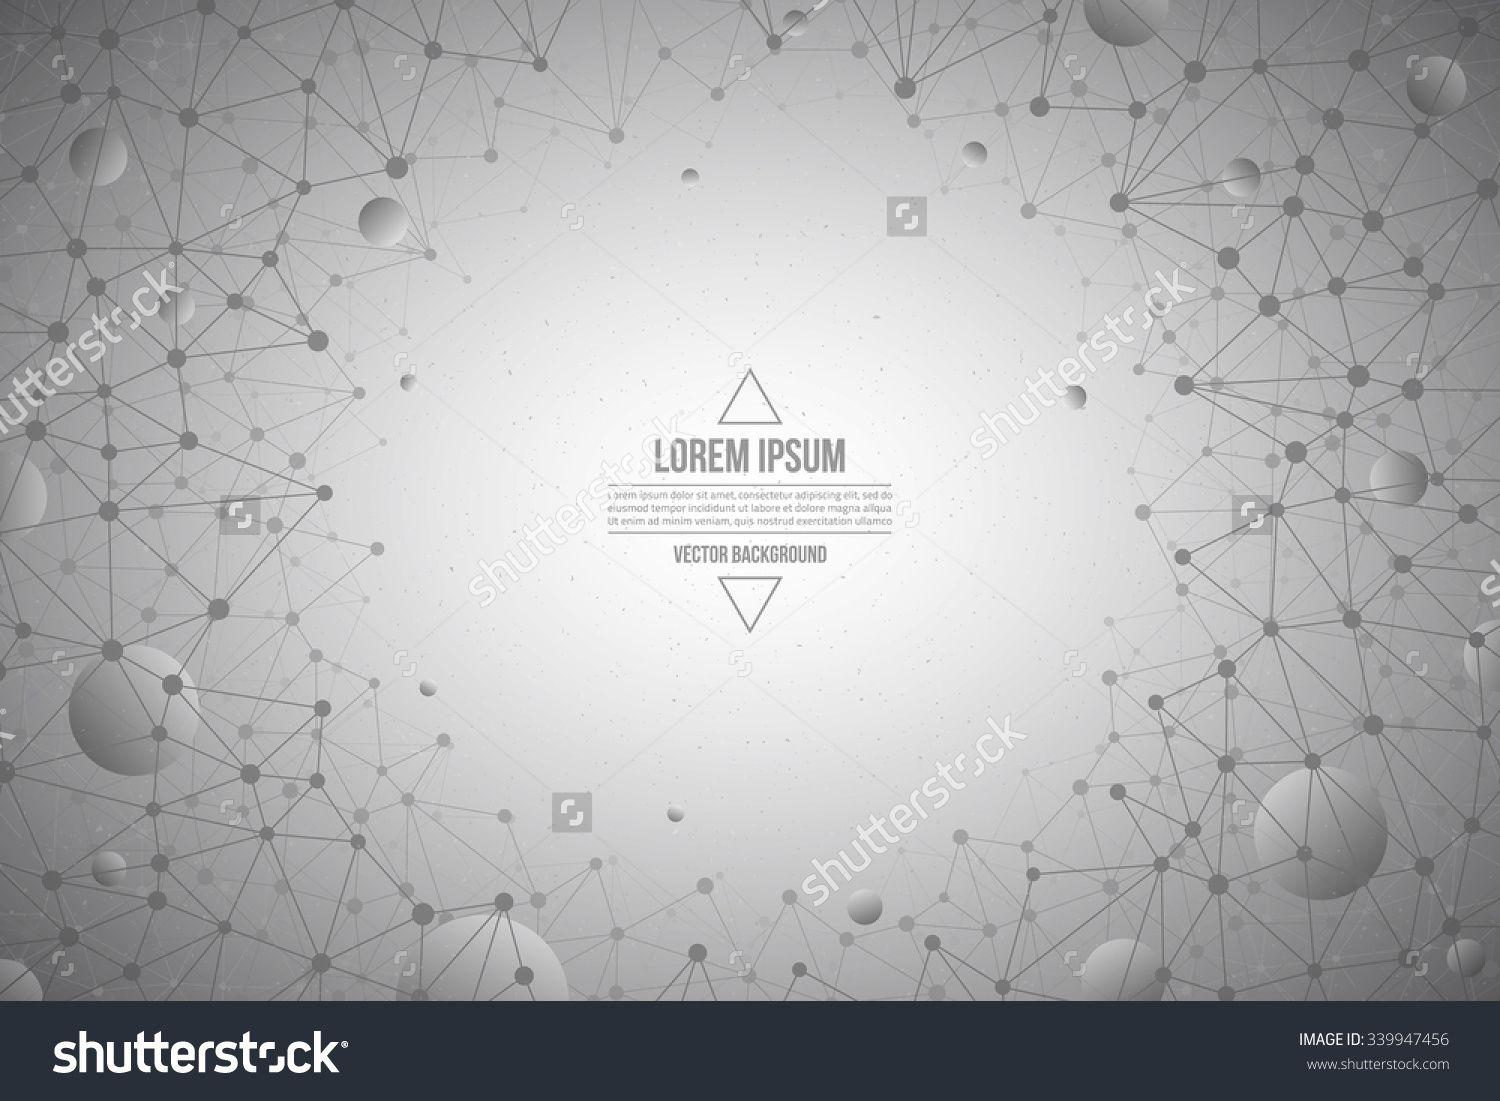 Abstract 3d Vector Technology Gray Background Connection Structure Internet Technology Business Vector Background Science Vector Background Abstract Vector